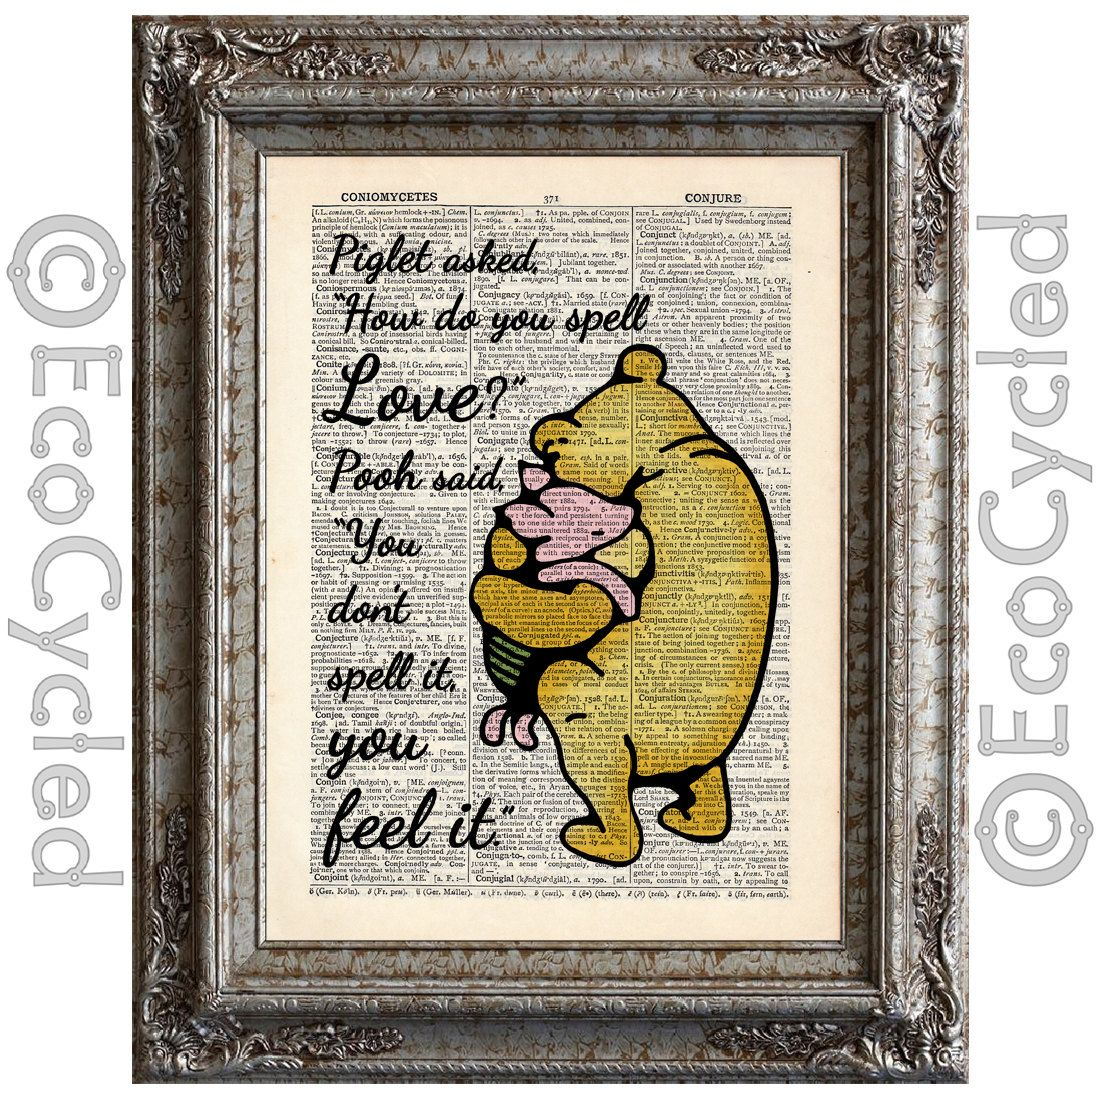 Winnie the Pooh & Piglet how do you spell love, feel it